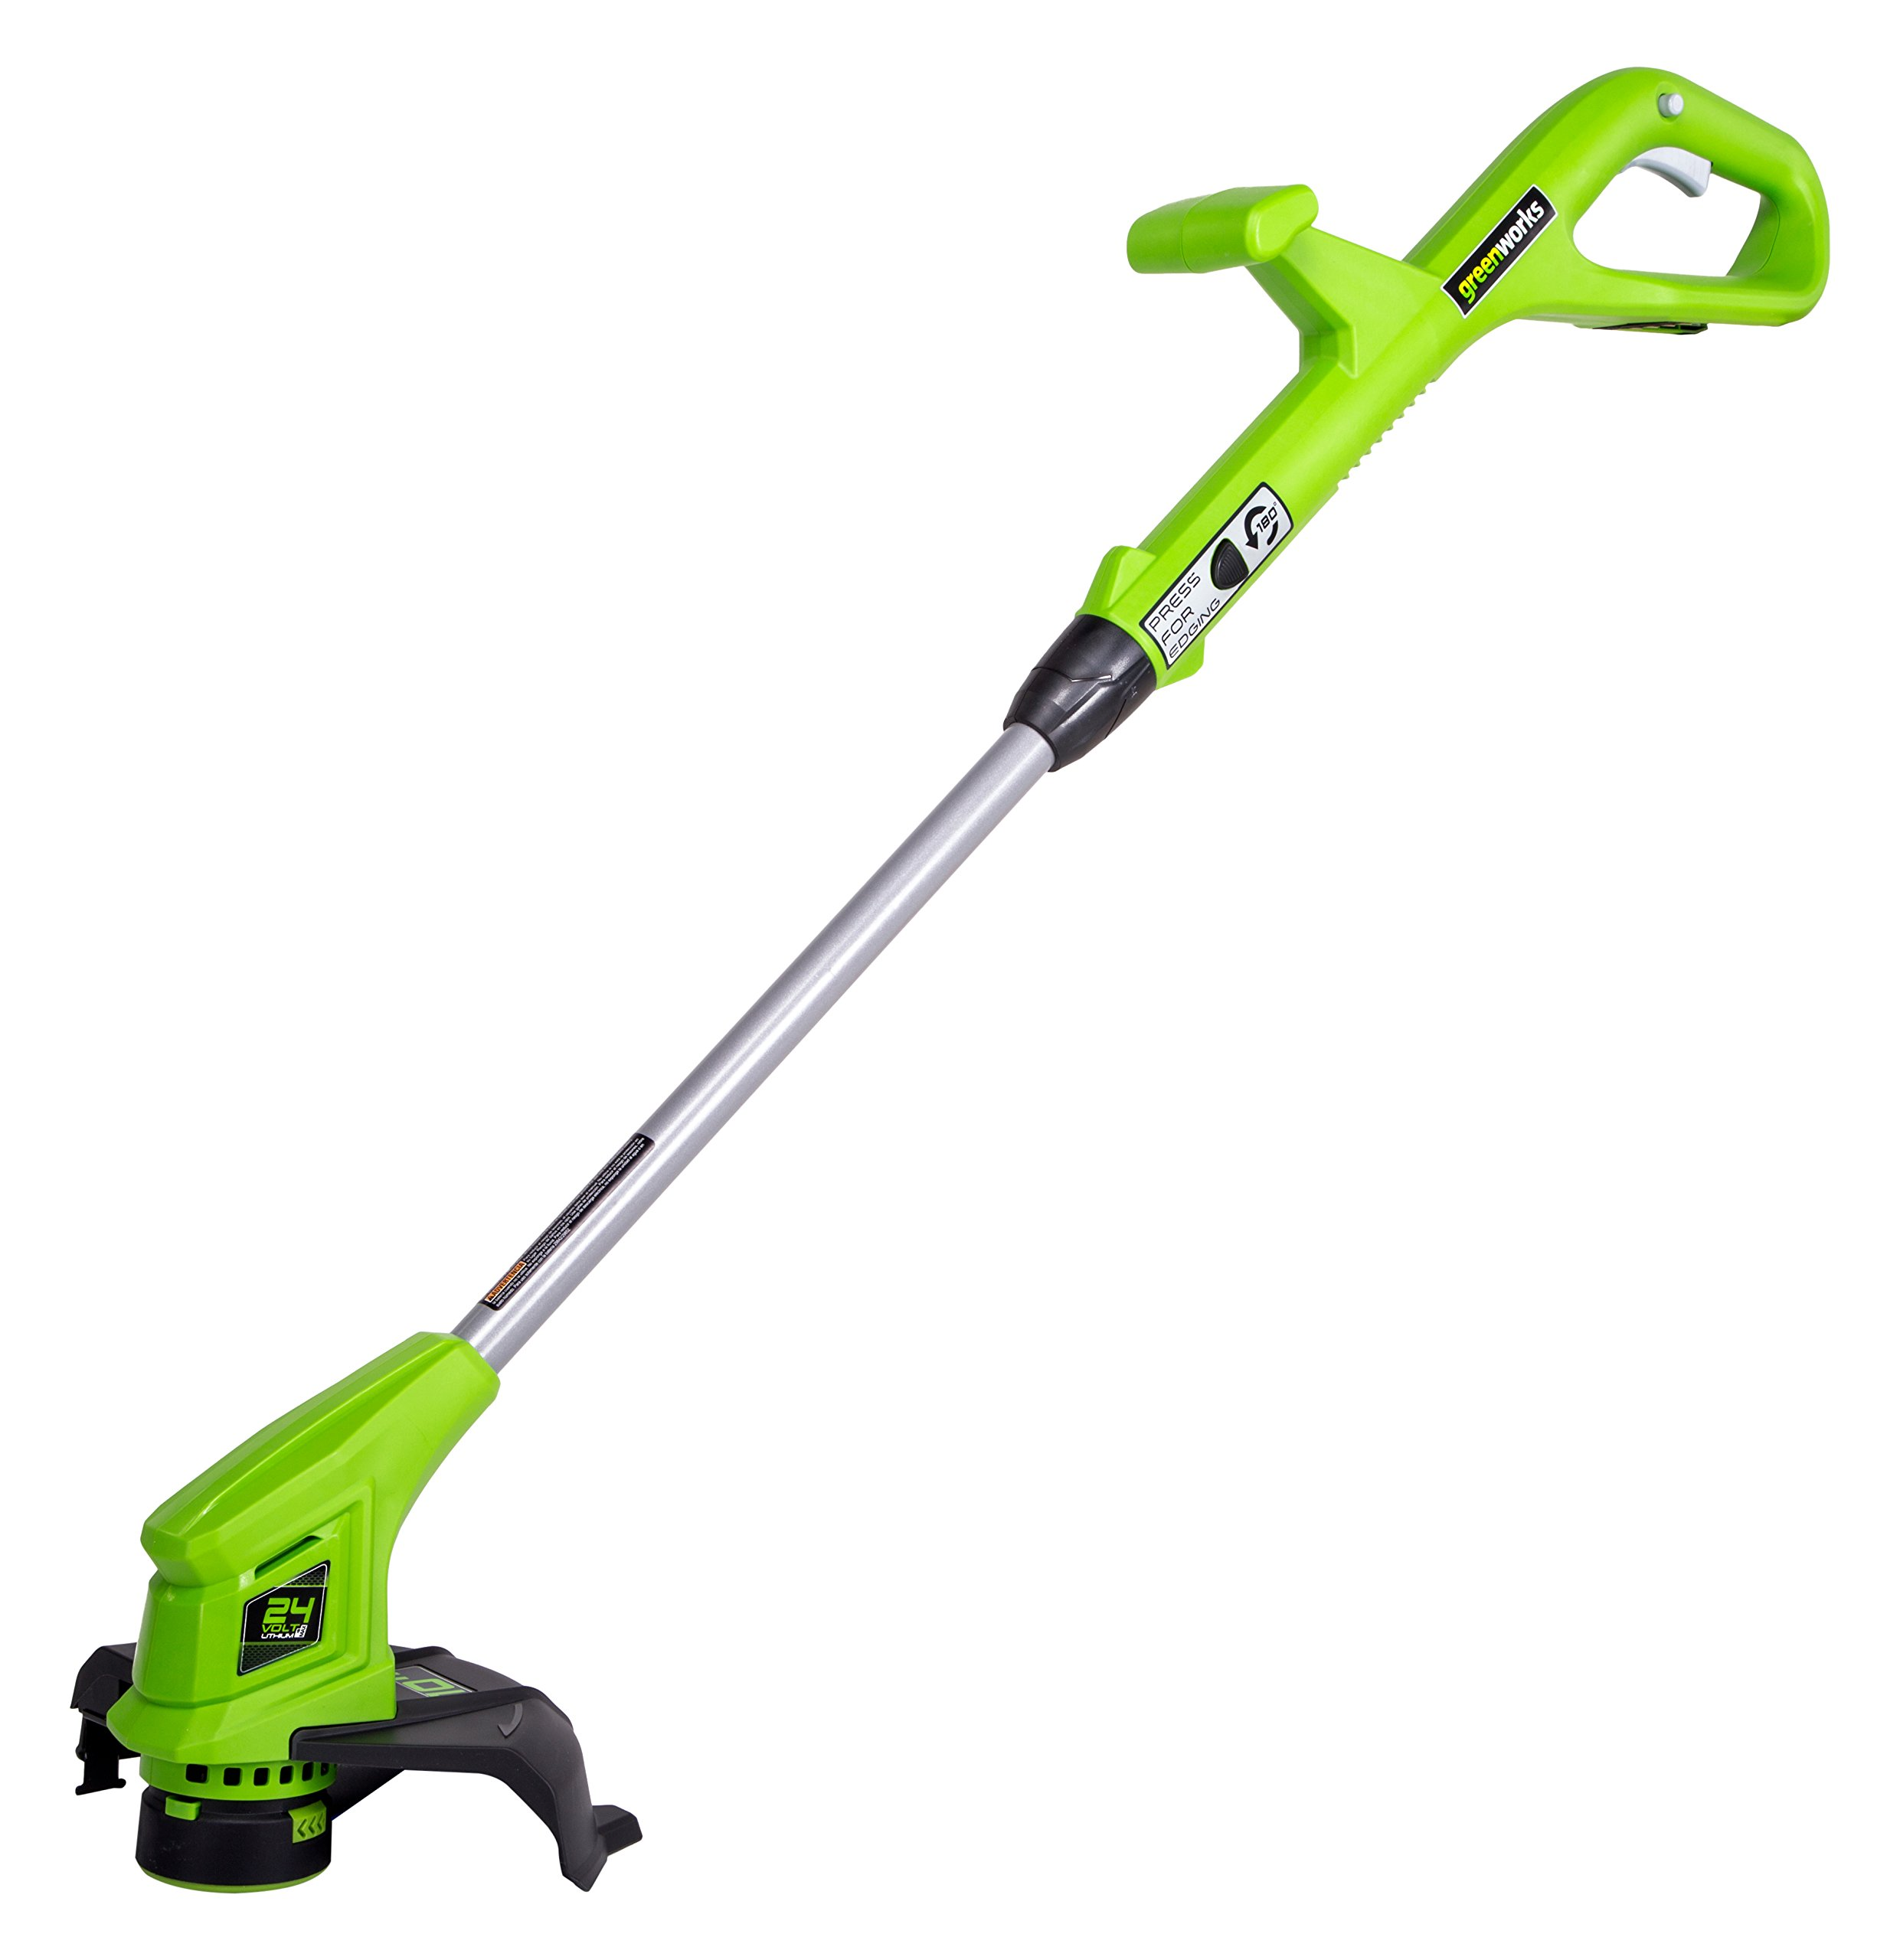 Greenworks 10-Inch 24V Cordless String Trimmer, Battery Not Included ST24B01